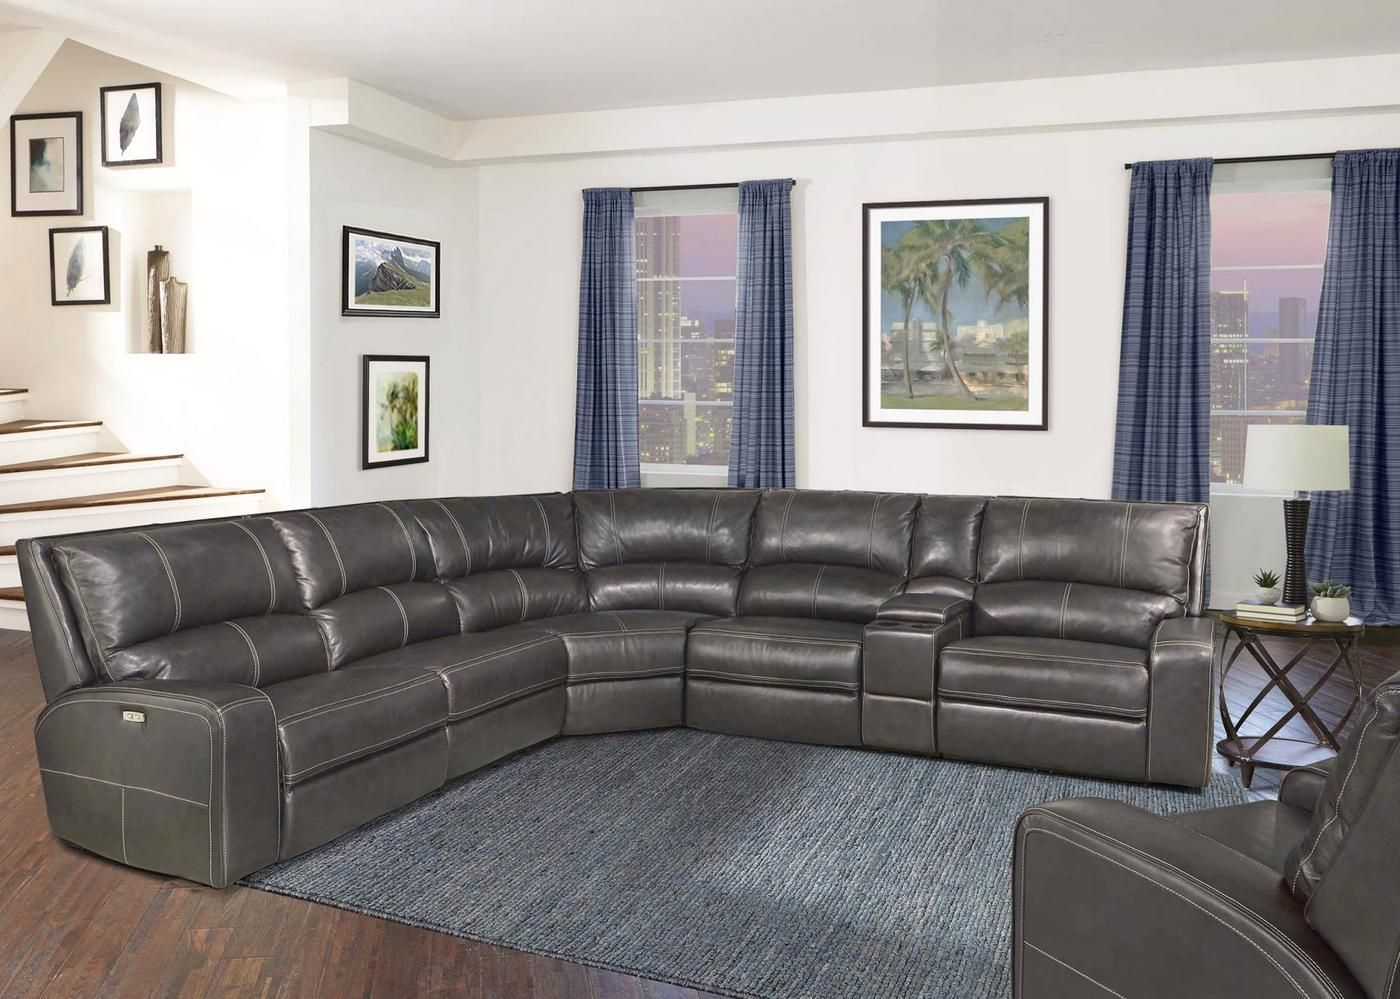 Swift Twilight Modular Leather Sectional Sofa W/ Powered Regarding Armless Sectional Sofas (View 12 of 15)